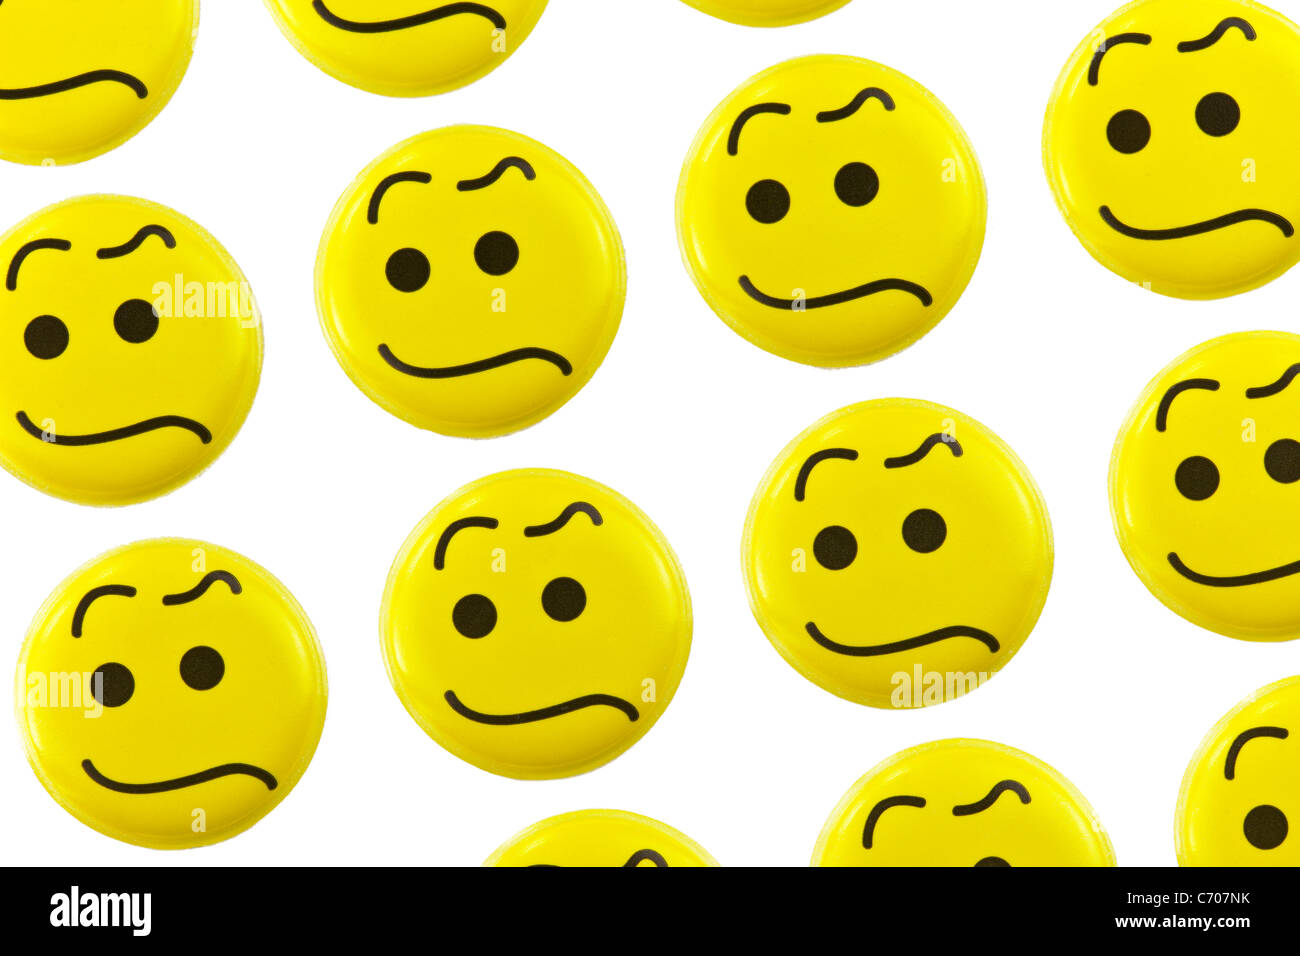 upset emoticons on a white background - Stock Image